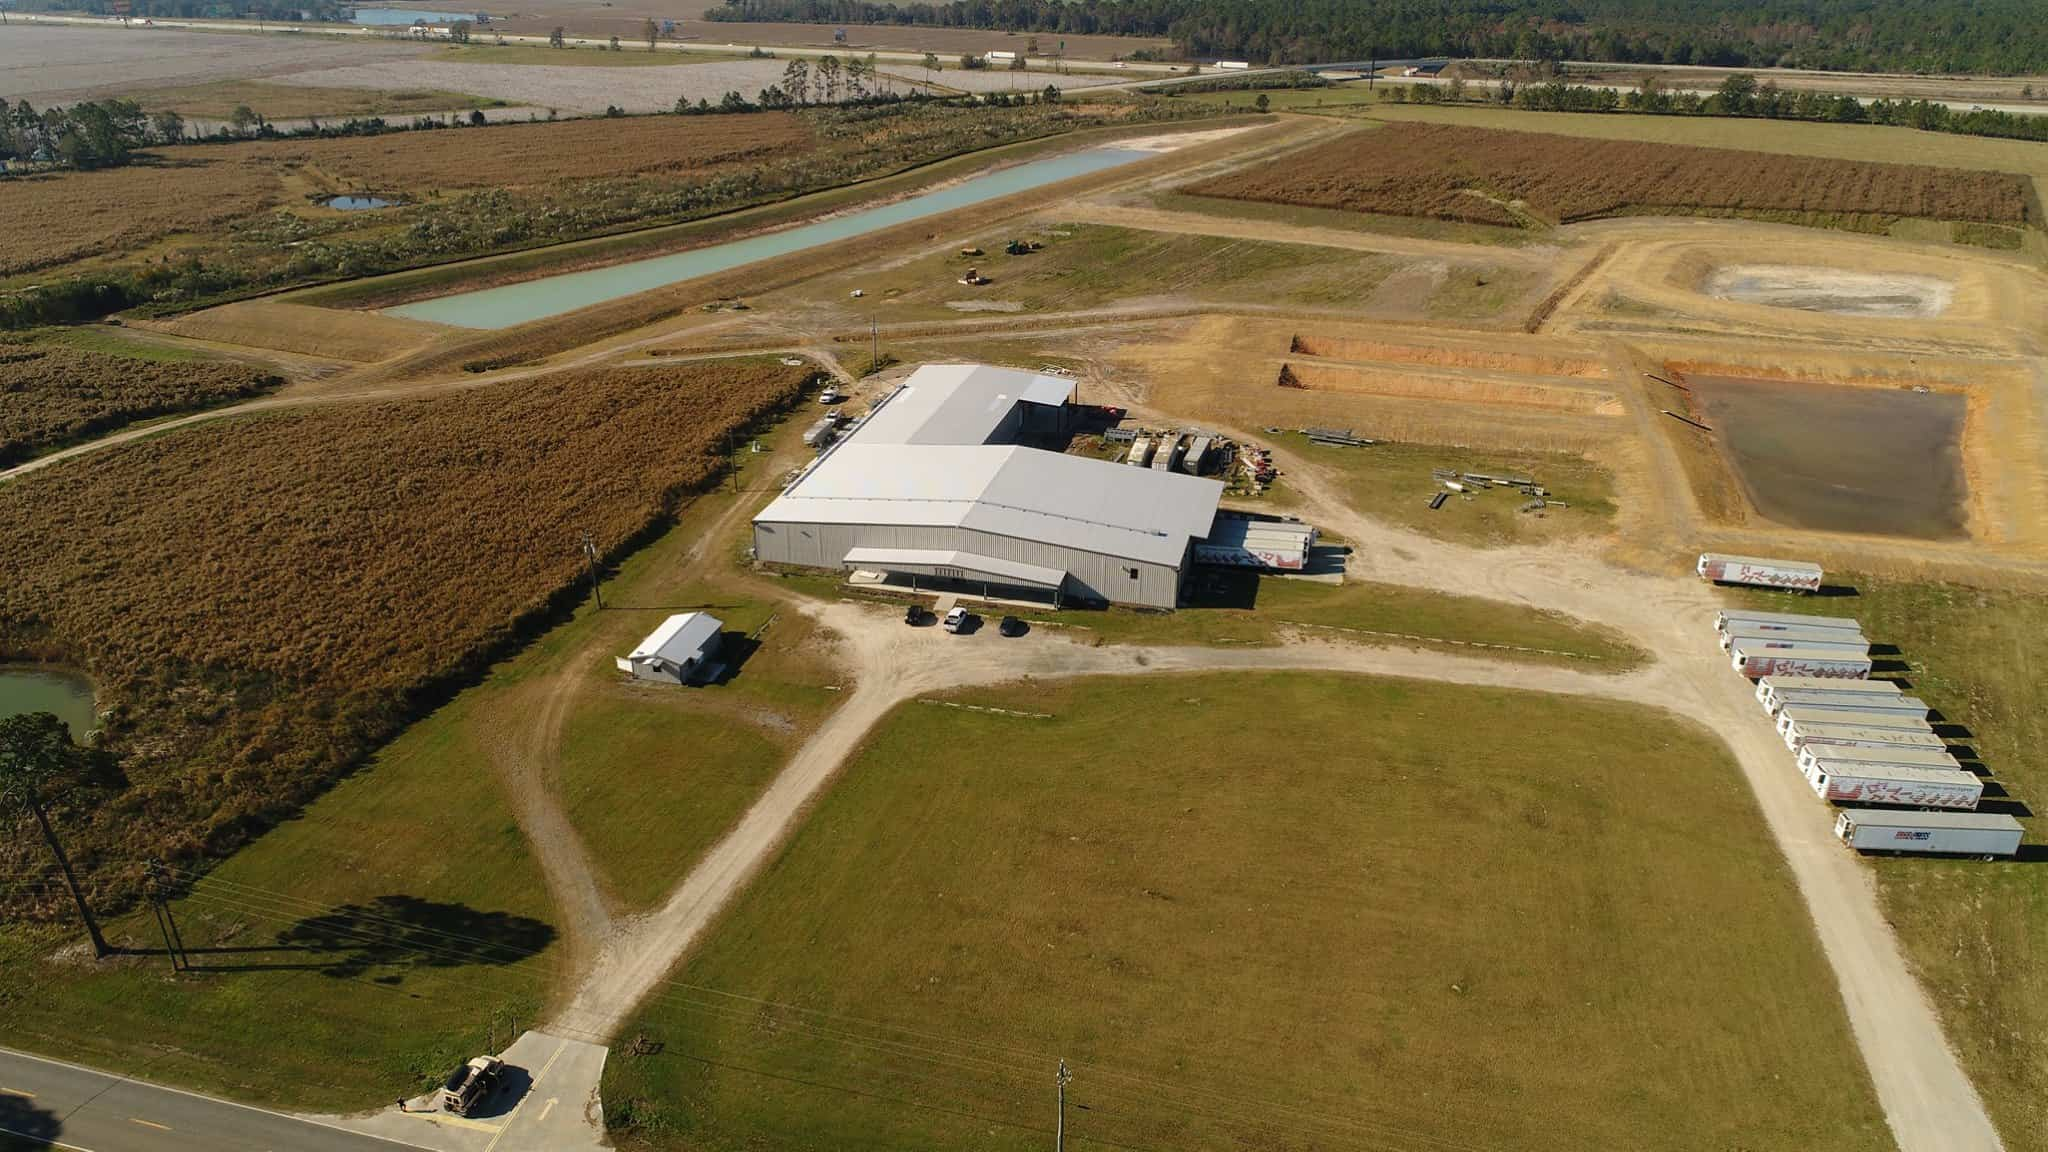 Grimmway Farms' Georgia Facility Has a Grand Opening